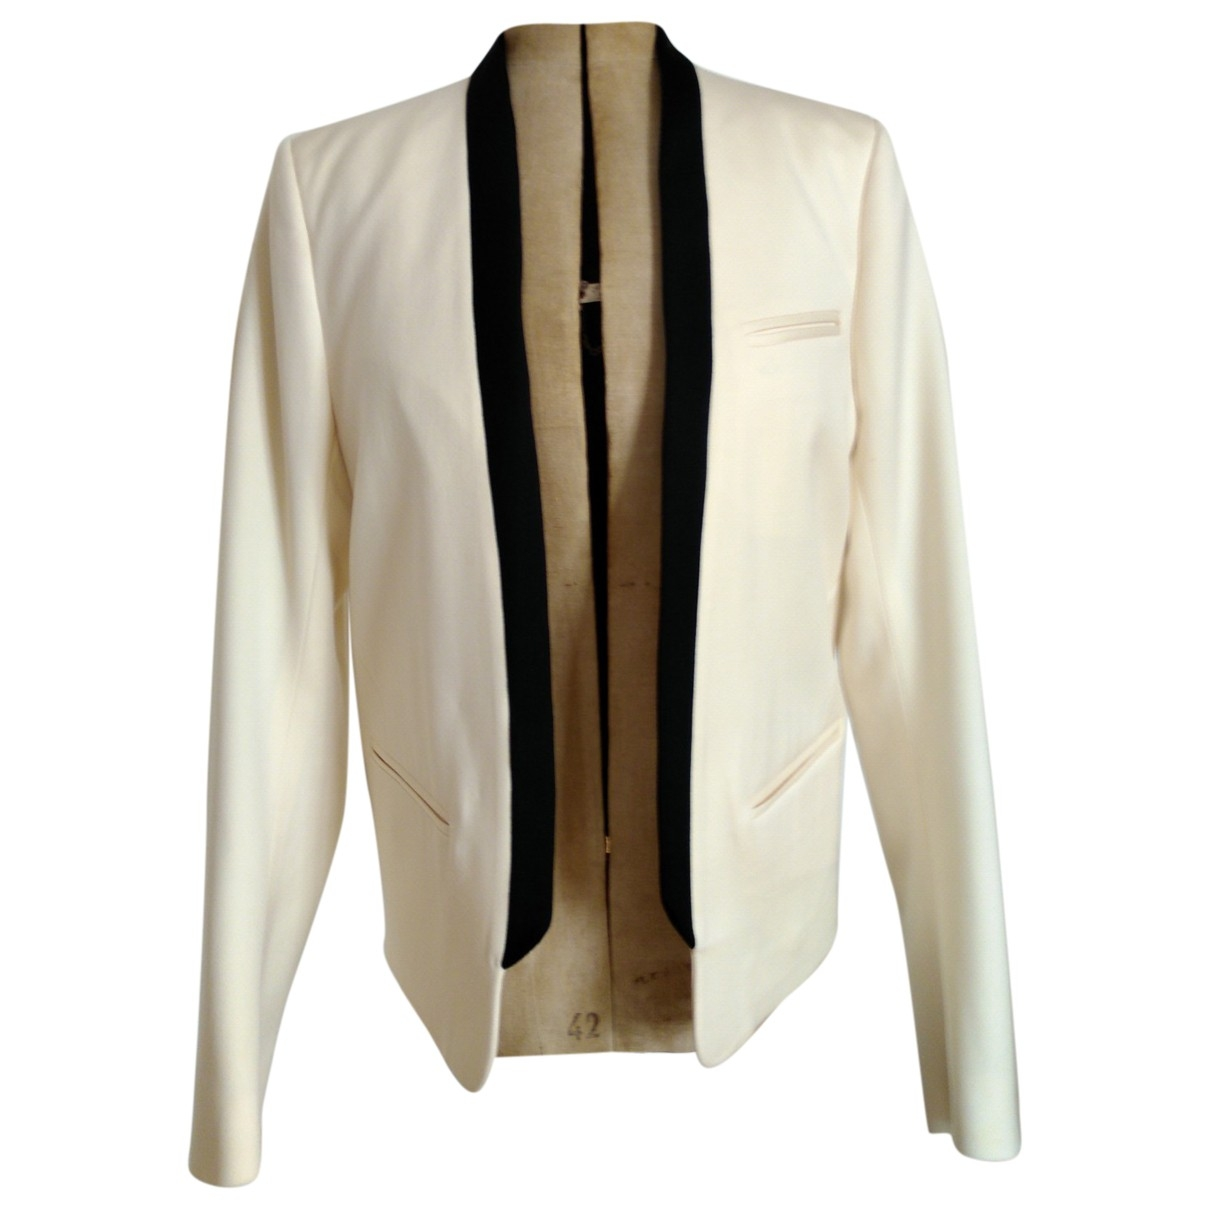 Balmain \N Ecru Wool jacket  for Men 50 IT